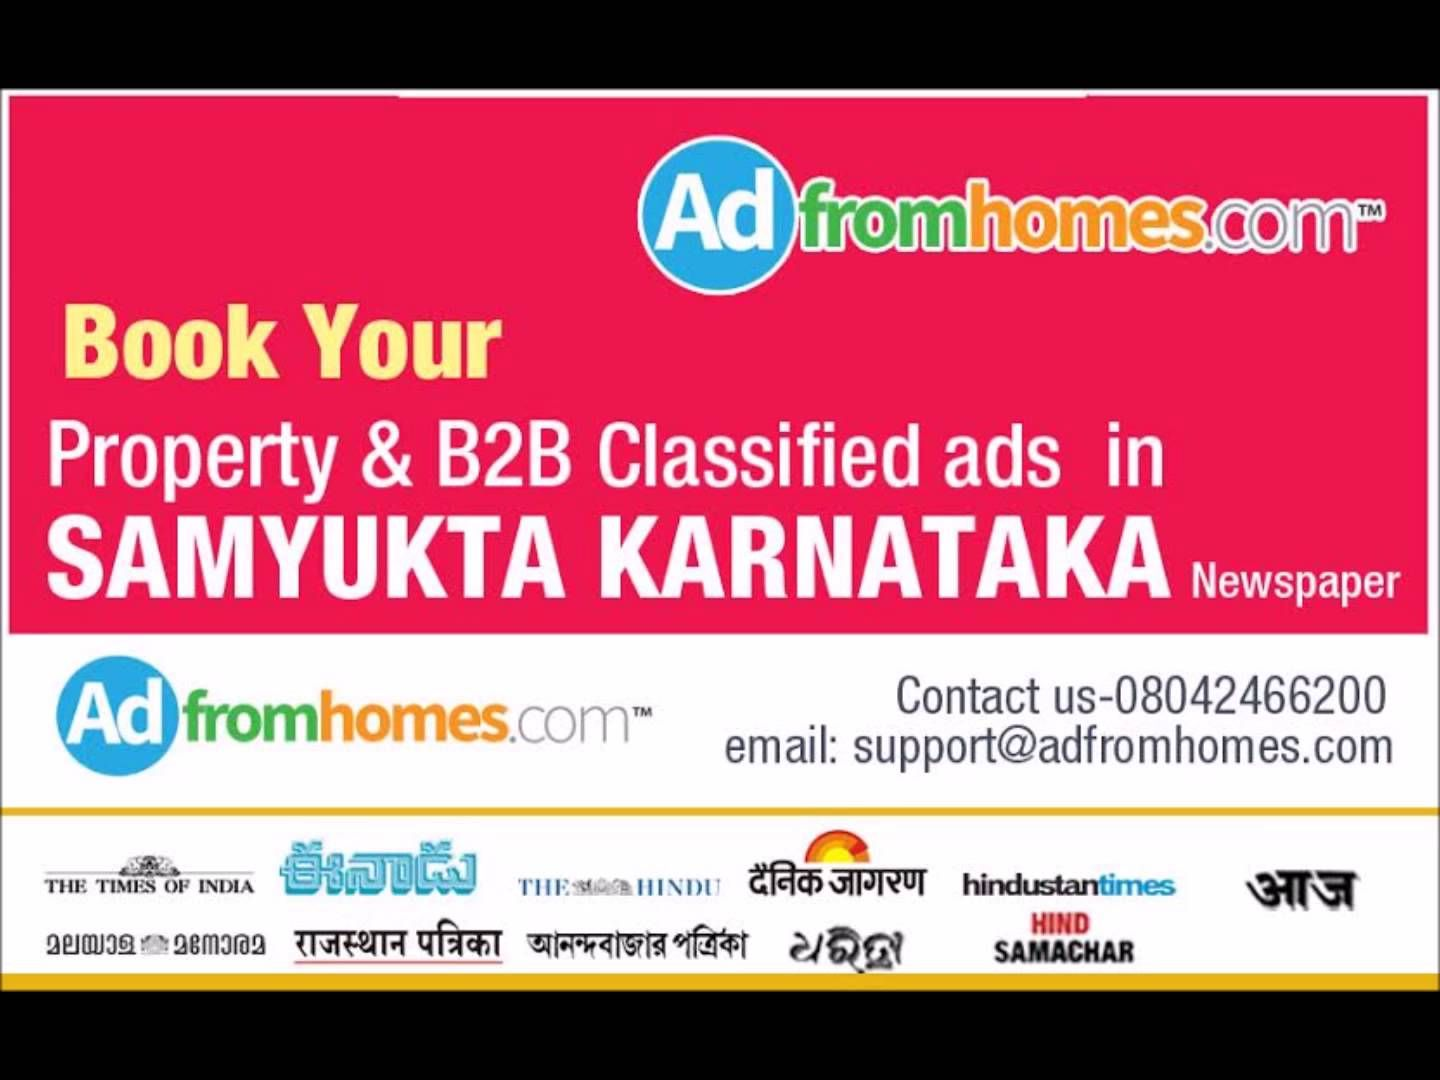 View our ad_rates to book property_ads and B2B